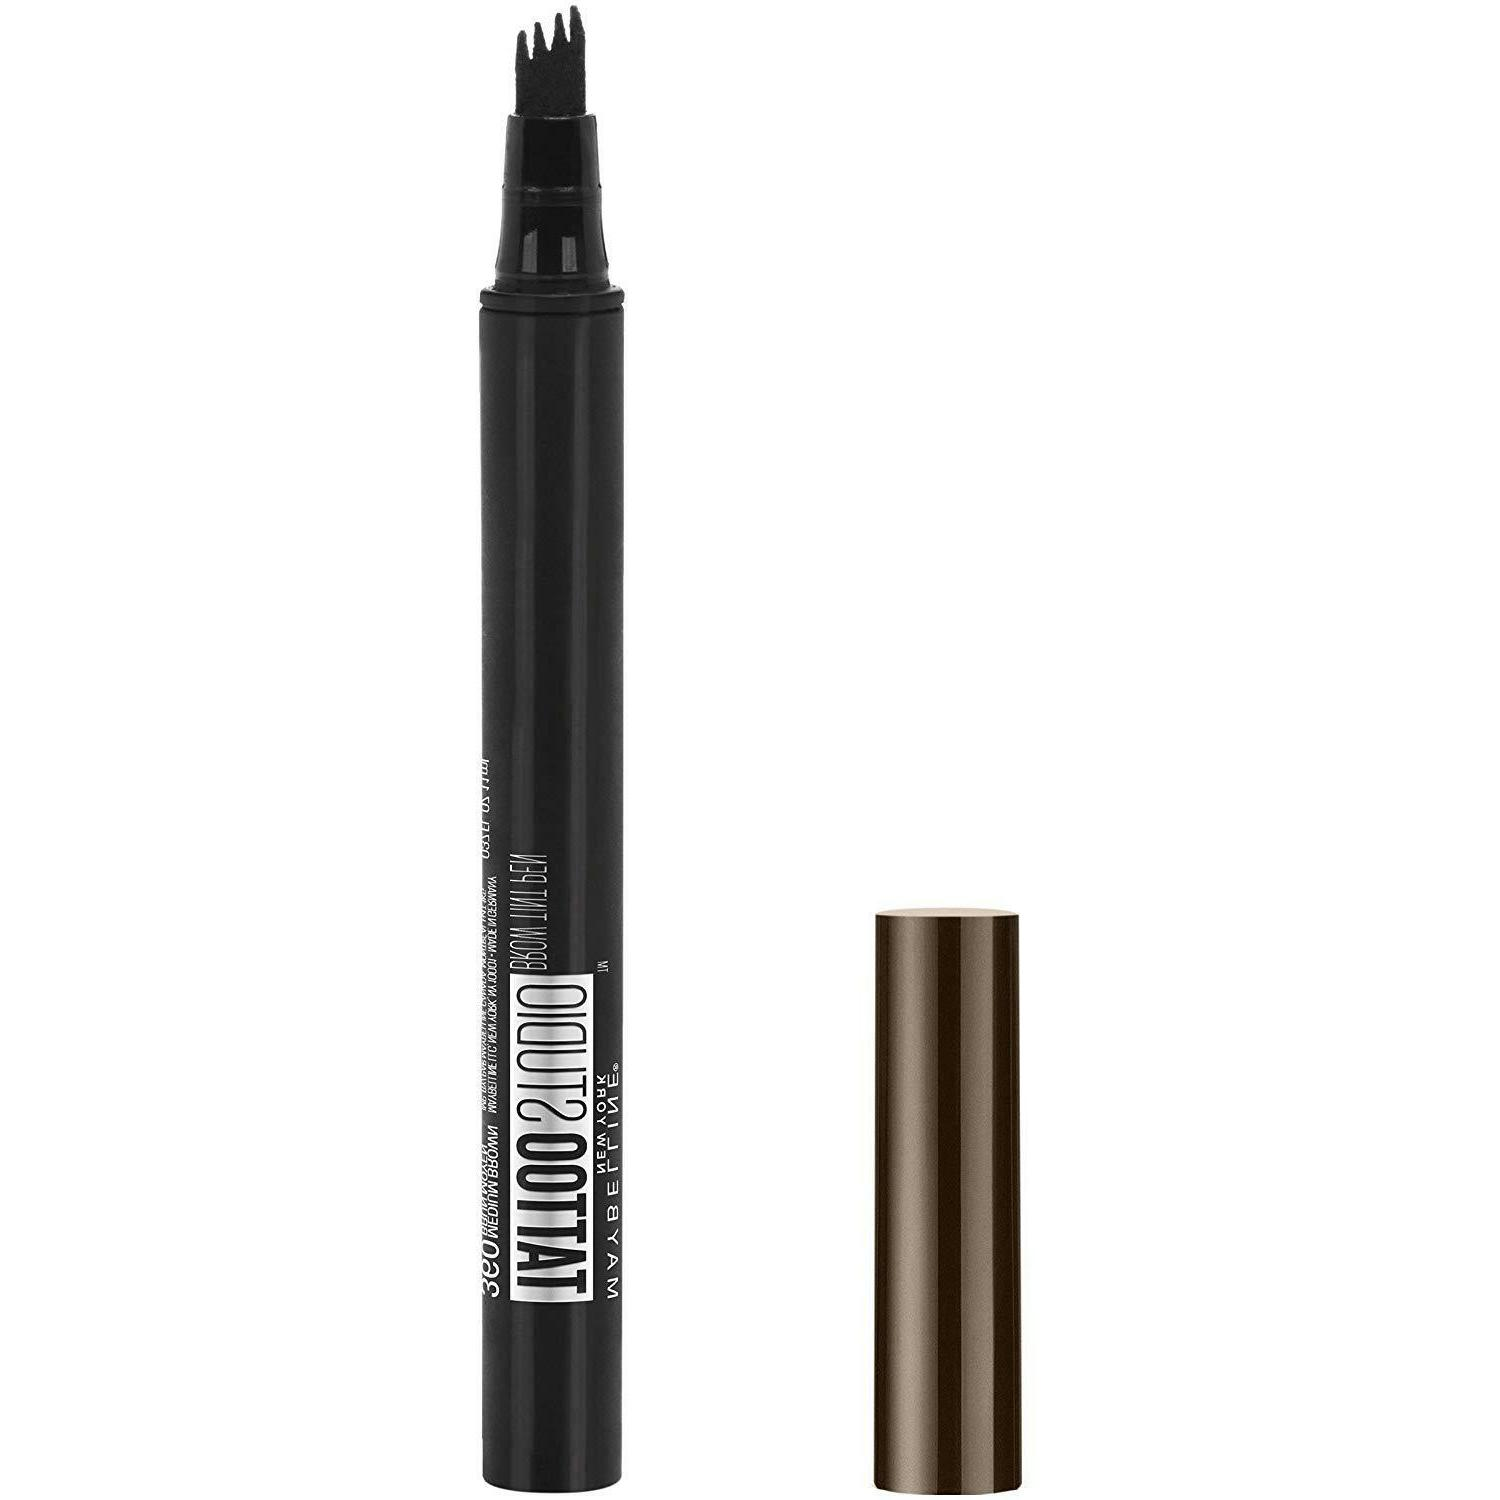 Maybelline TattooStudio Pen Eyebrow Brown